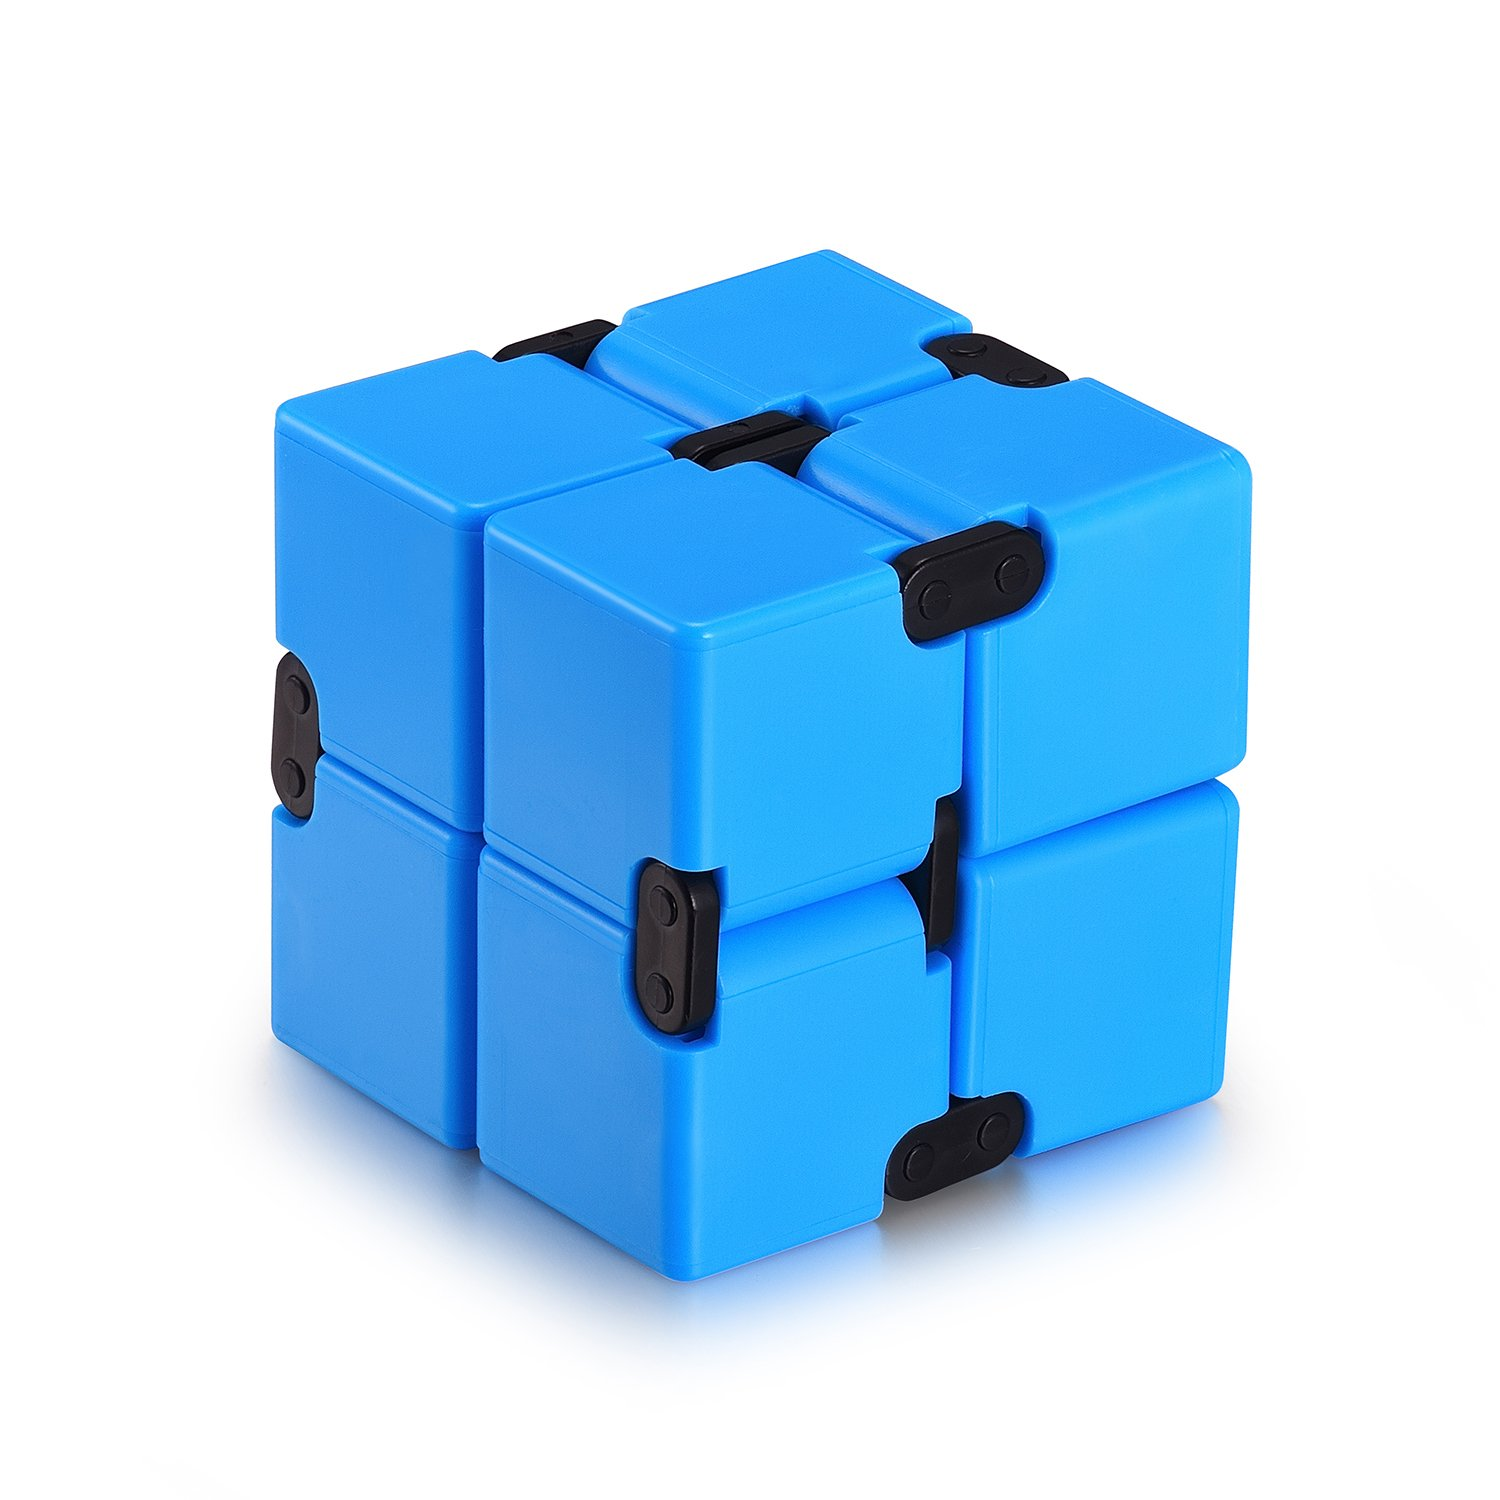 Infinity Cube Fidget Cube Toy for Adults & Kids Relieve Stress & Anxiety Hand Fidget Stress Reducer Best for ADD,ADHD,OCD,Anxiety Disorder,Autism by Ganowo (Blue)